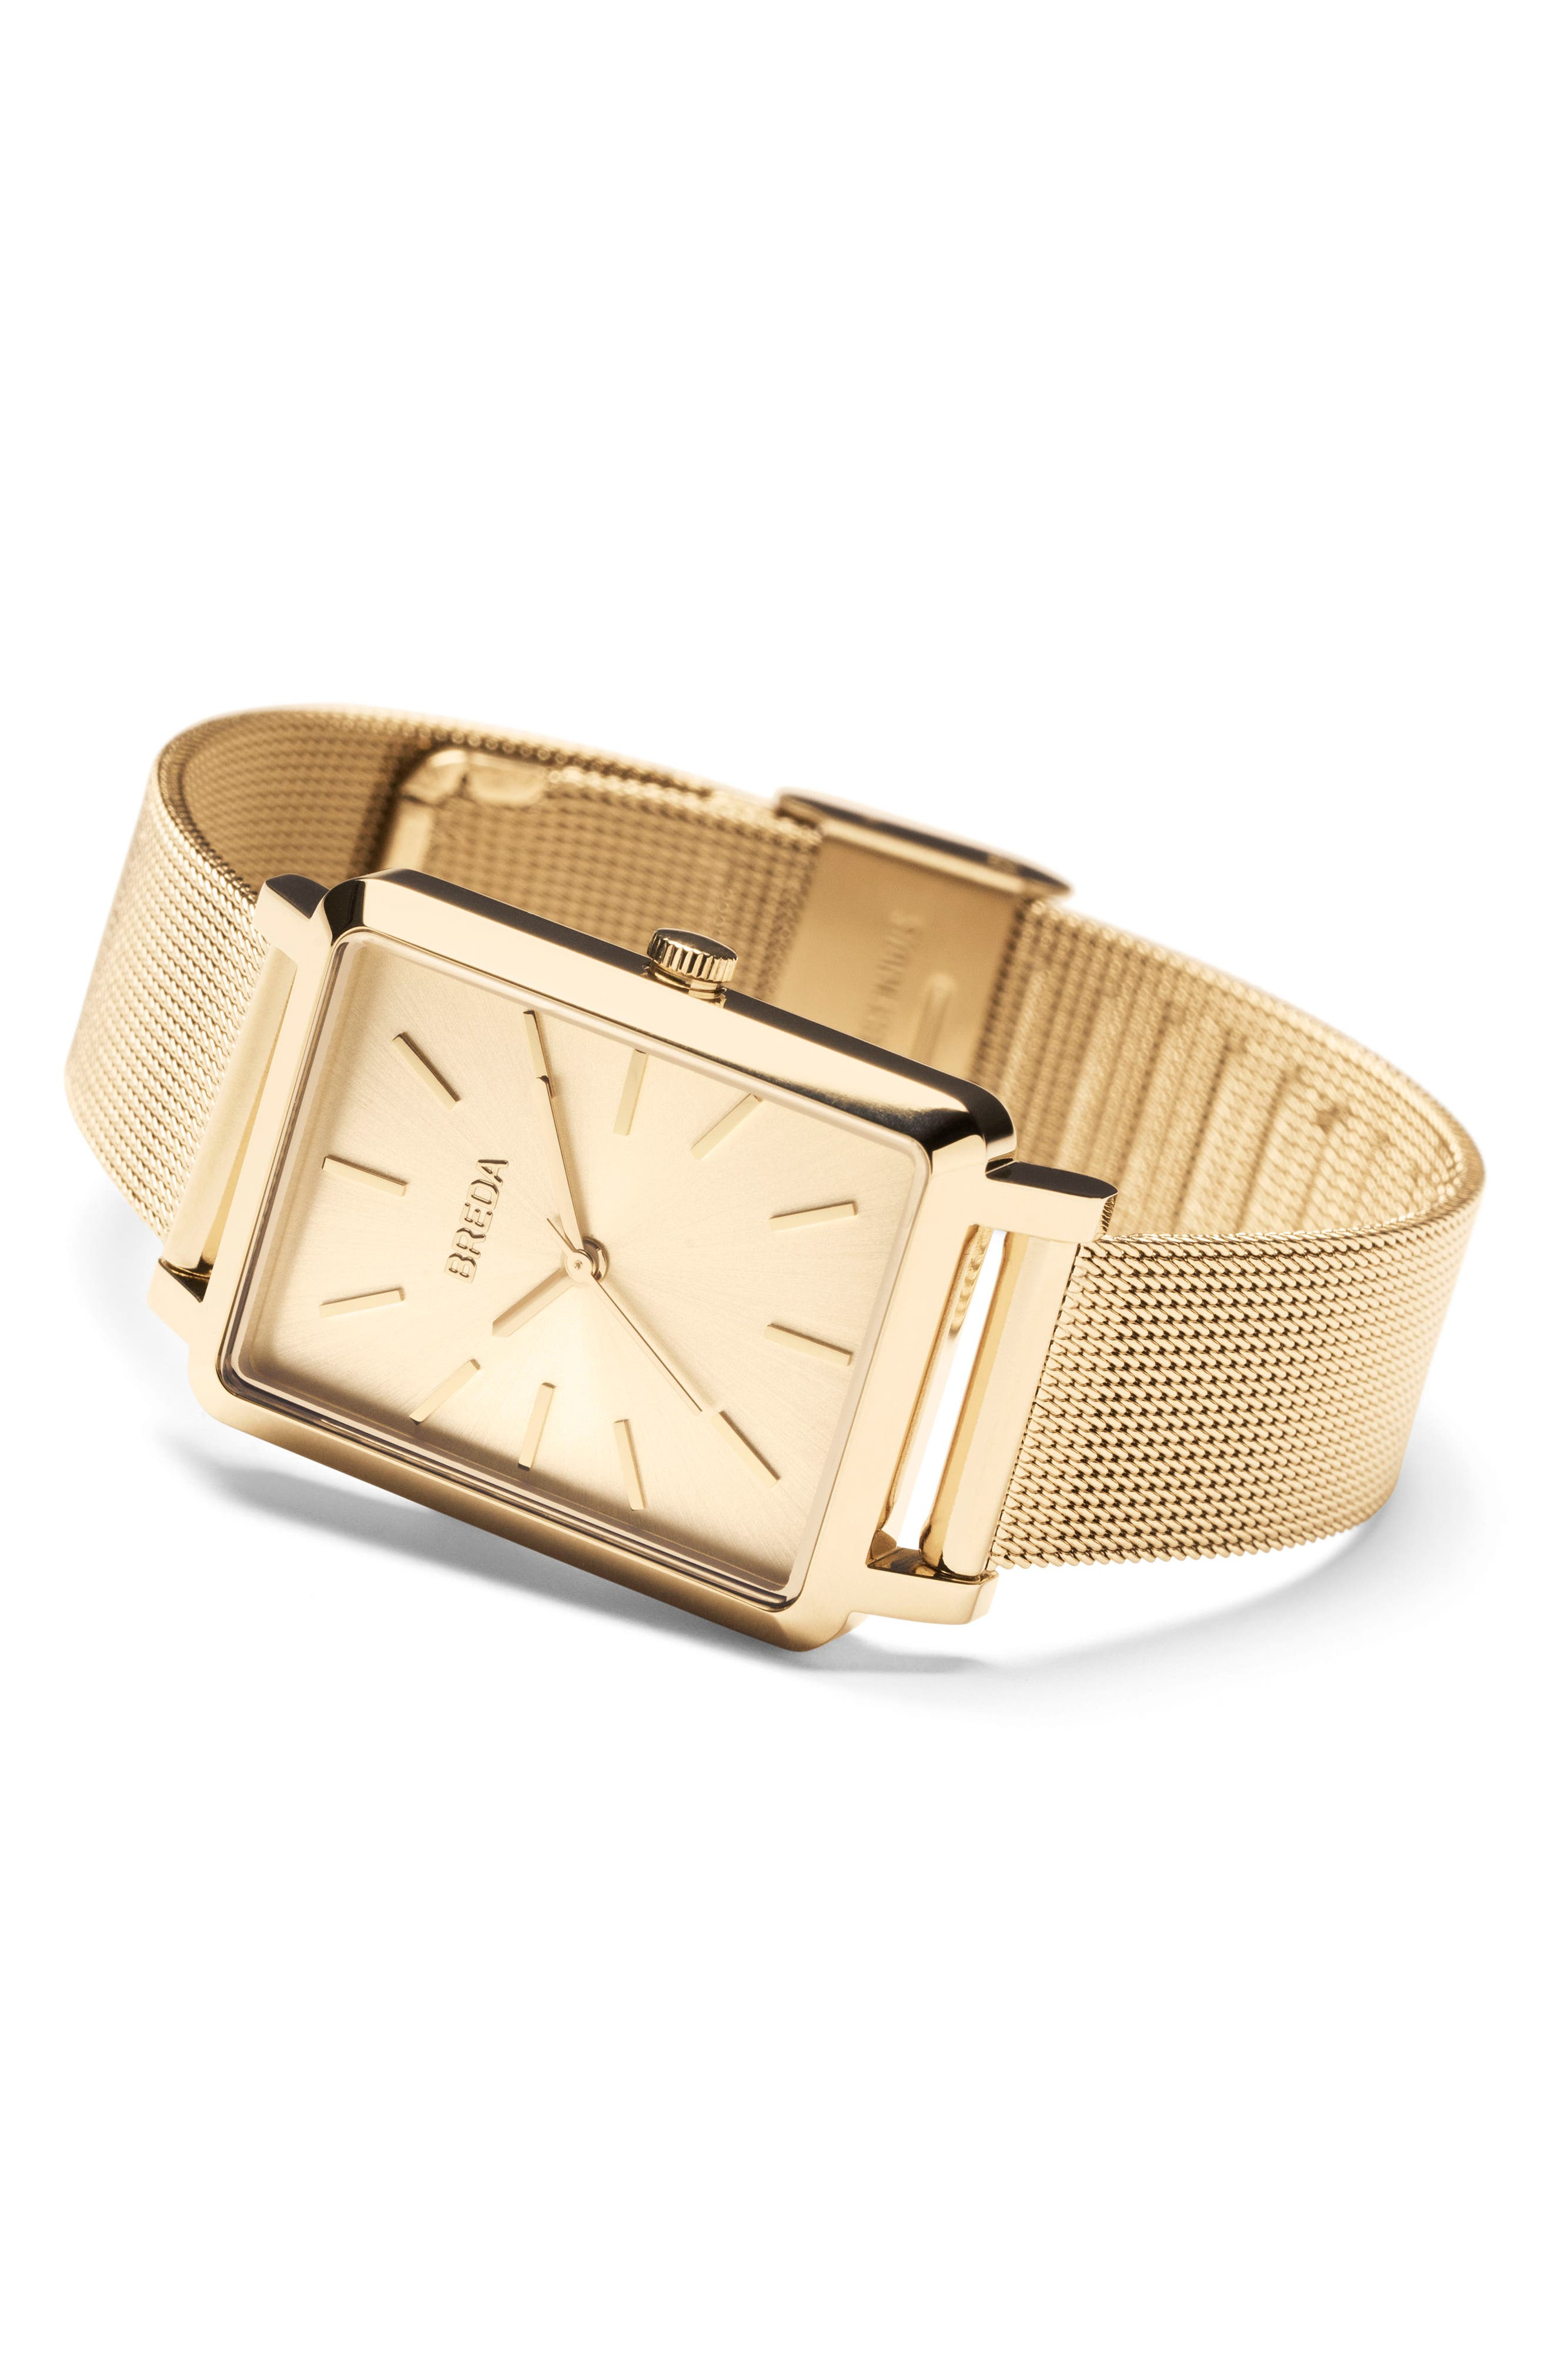 Baer Mesh Strap Watch, 26mm,                             Alternate thumbnail 3, color,                             Gold